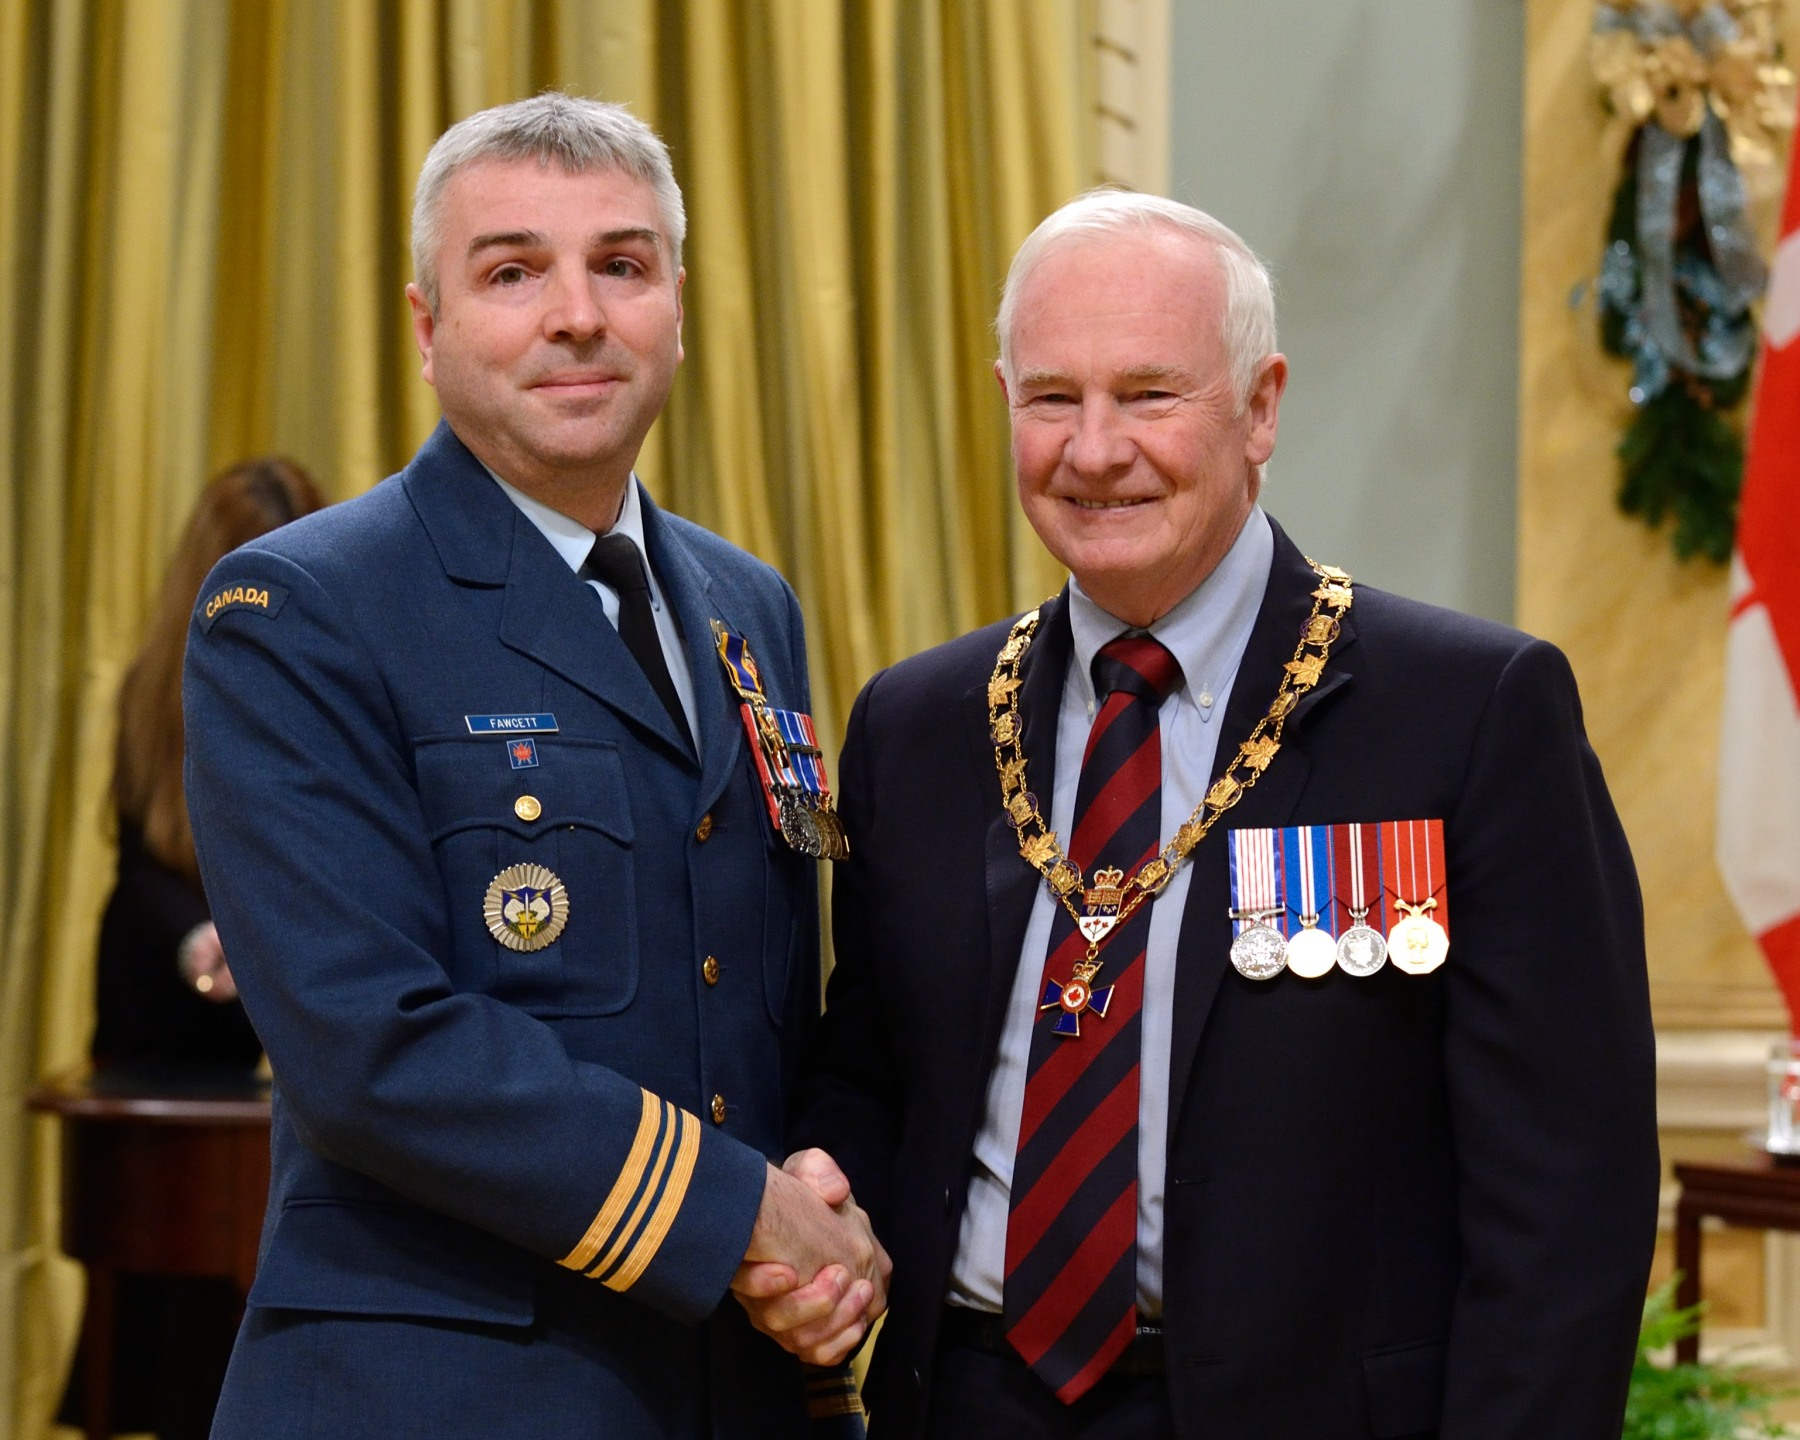 His Excellency presented the Order of Military Merit at the Officer level (O.M.M.) to Major Michael Fawcett, O.M.M., C.D., Canadian Contingent Alaskan Norad Region Headquarters